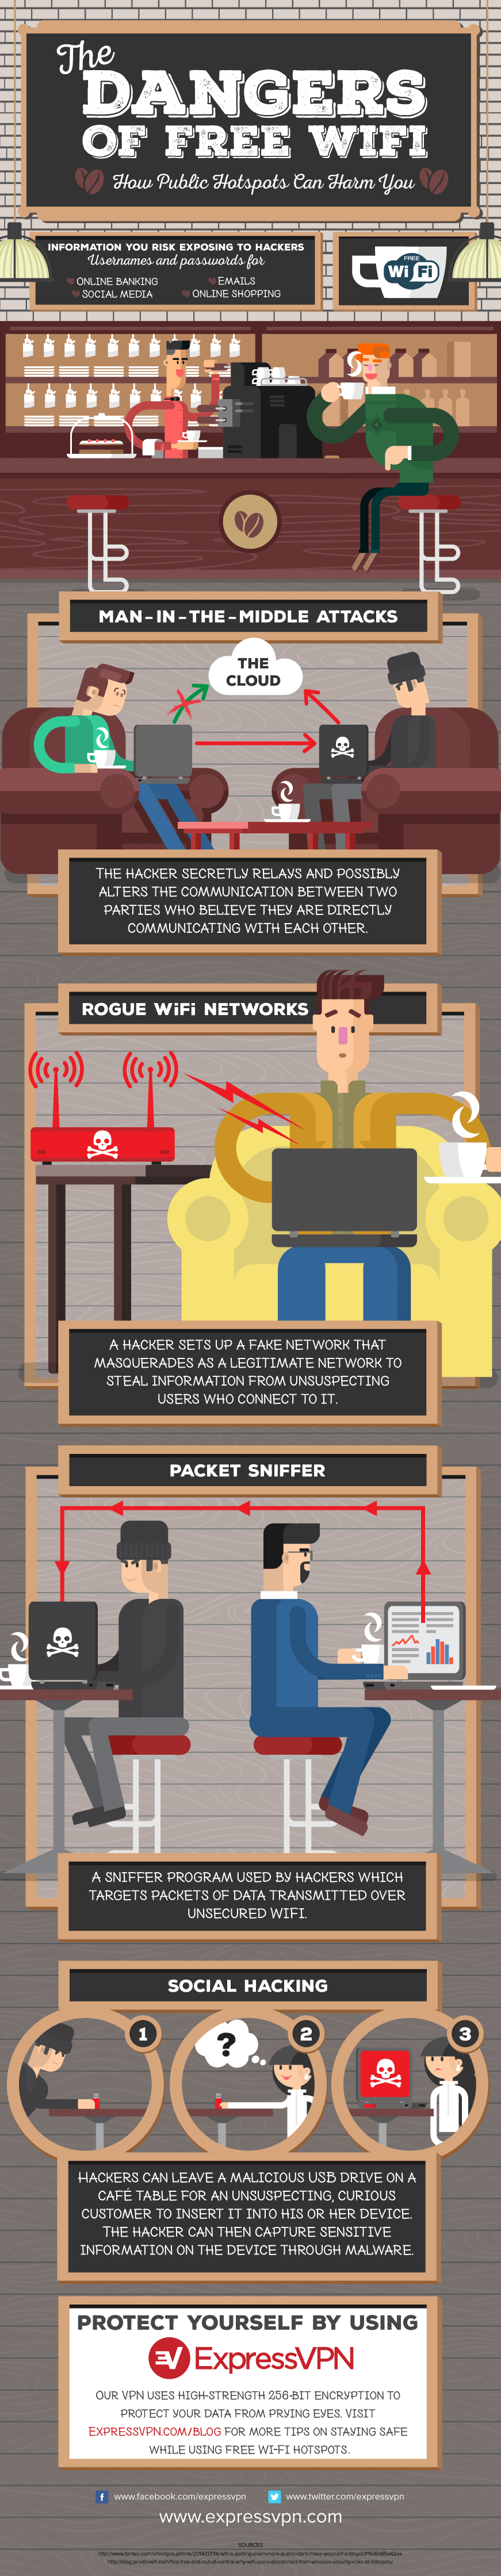 Infographic on dangers of using public Wi-Fi